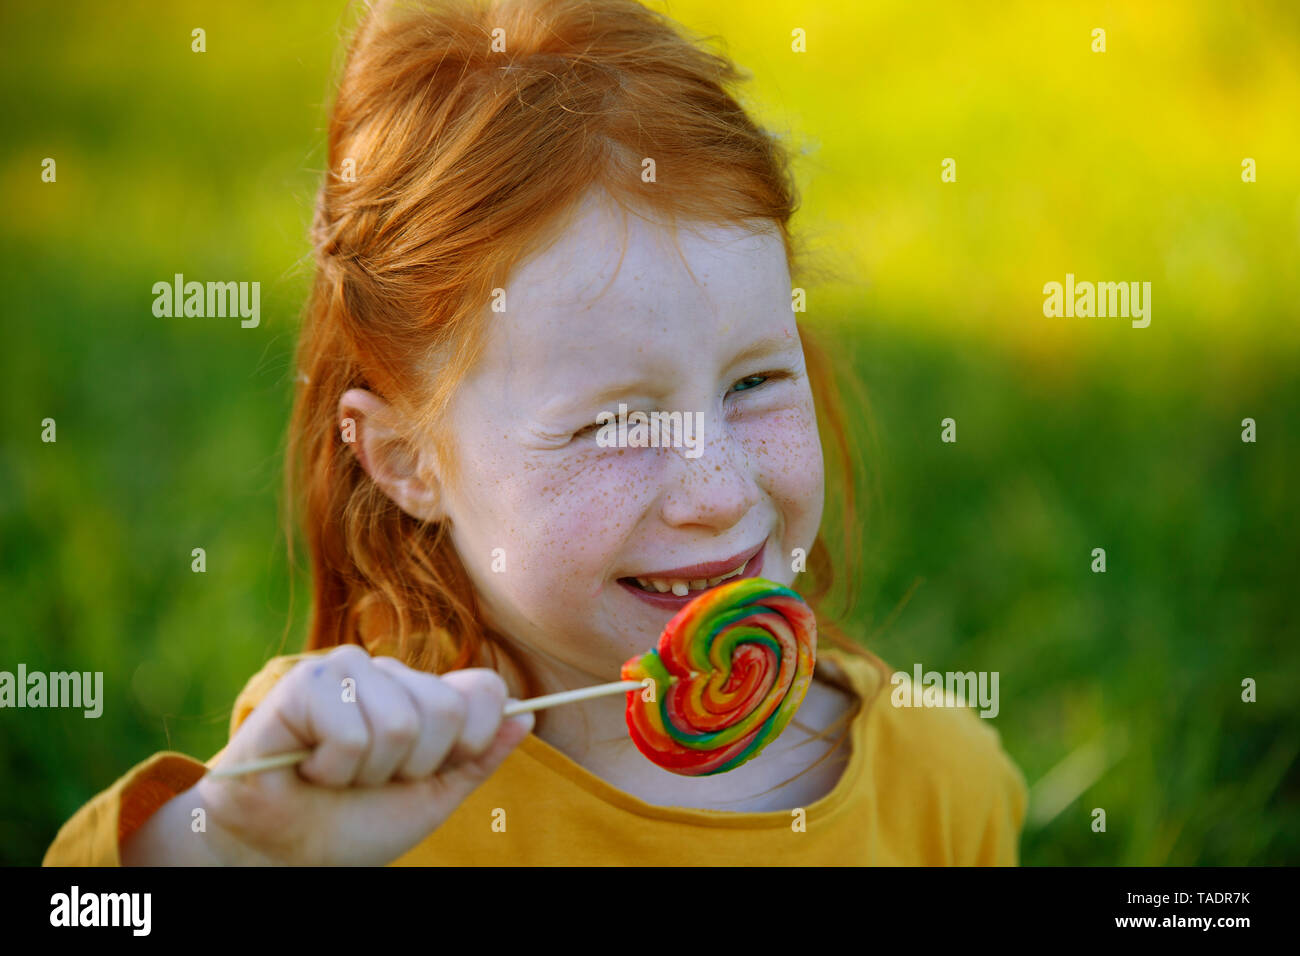 Portrait of happy girl eating a lollipop - Stock Image